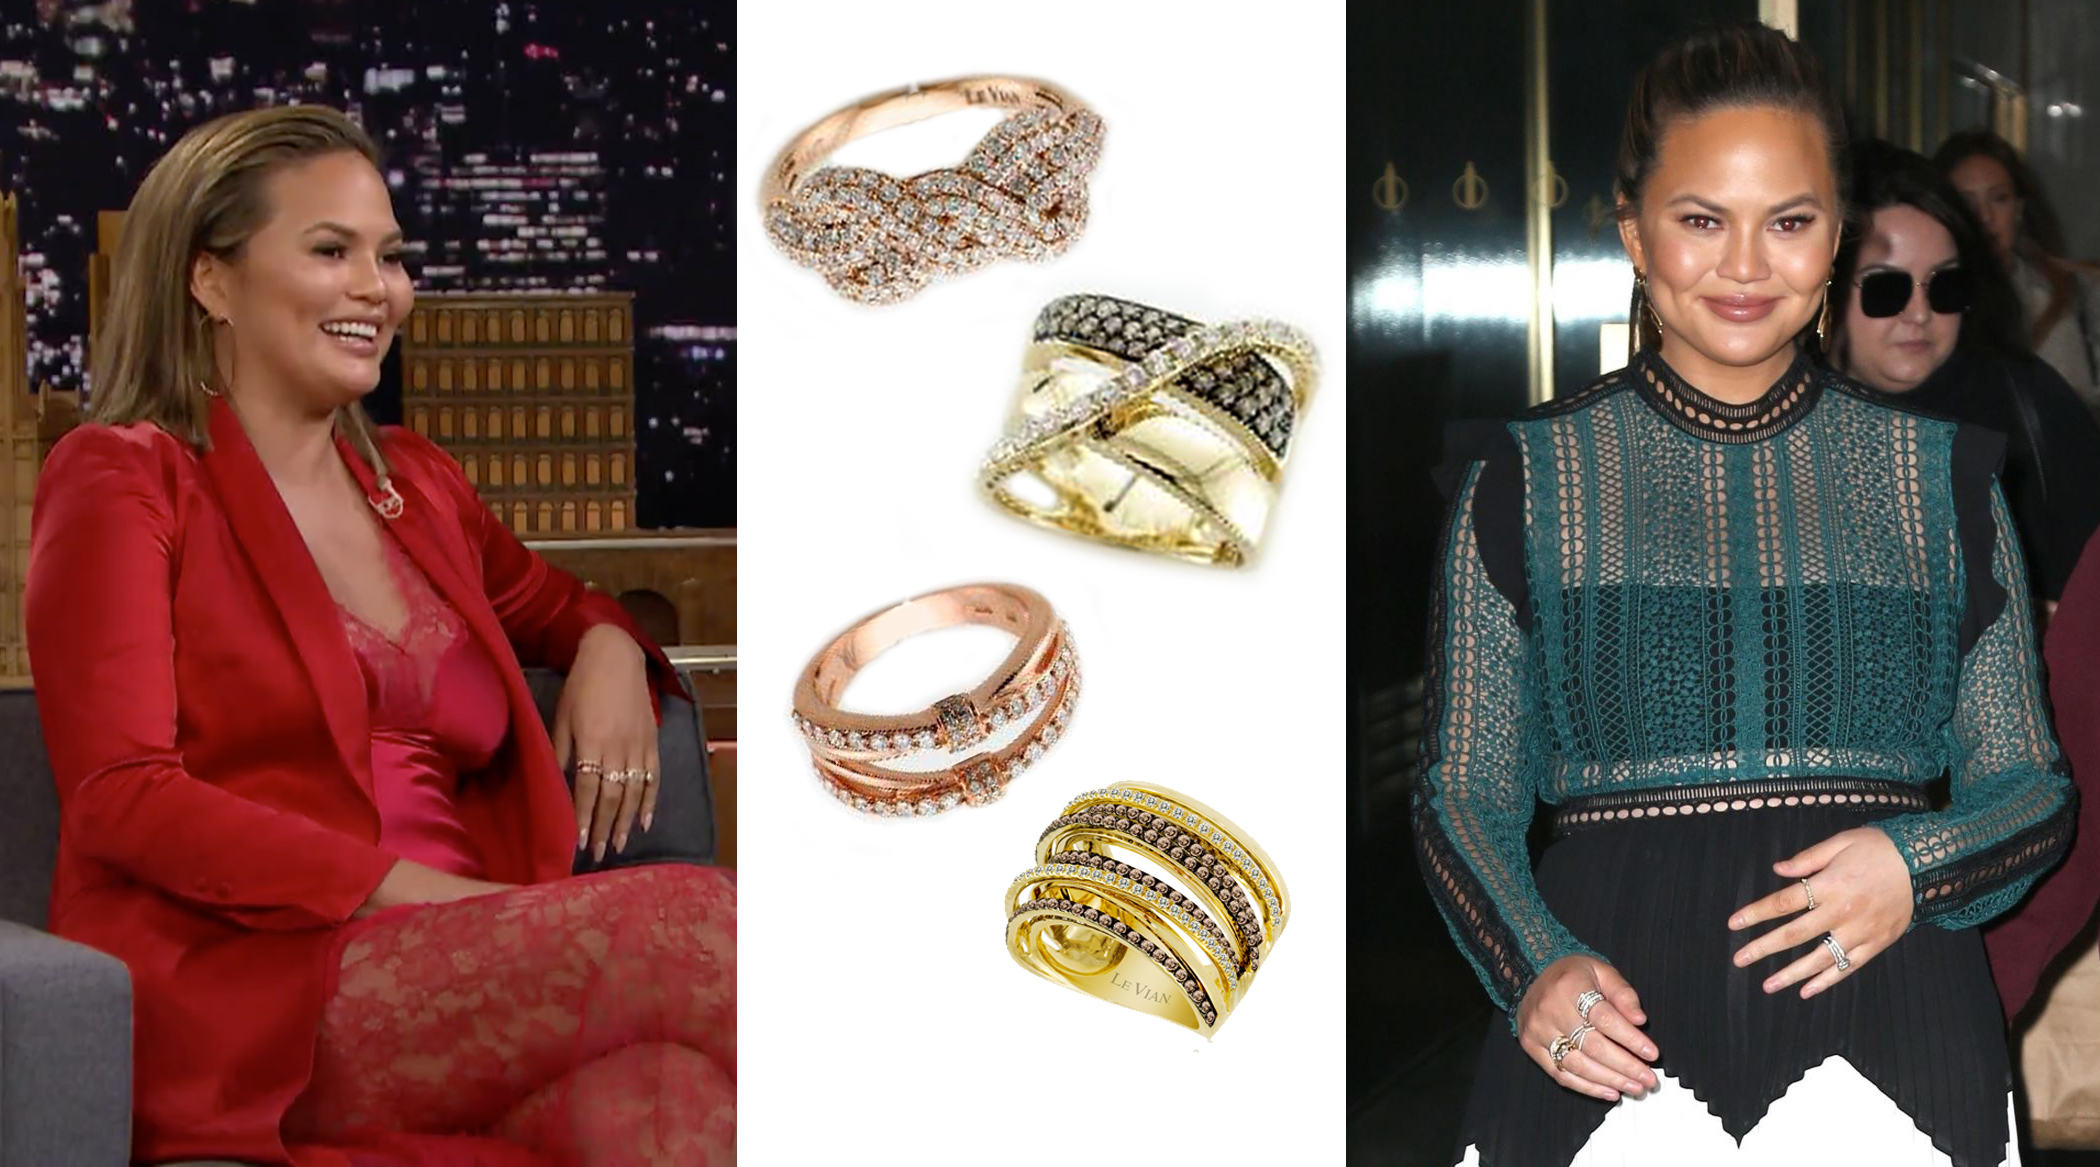 Chrissy Teigen Wears Le Vian Rings for Two NYC Appearances in January